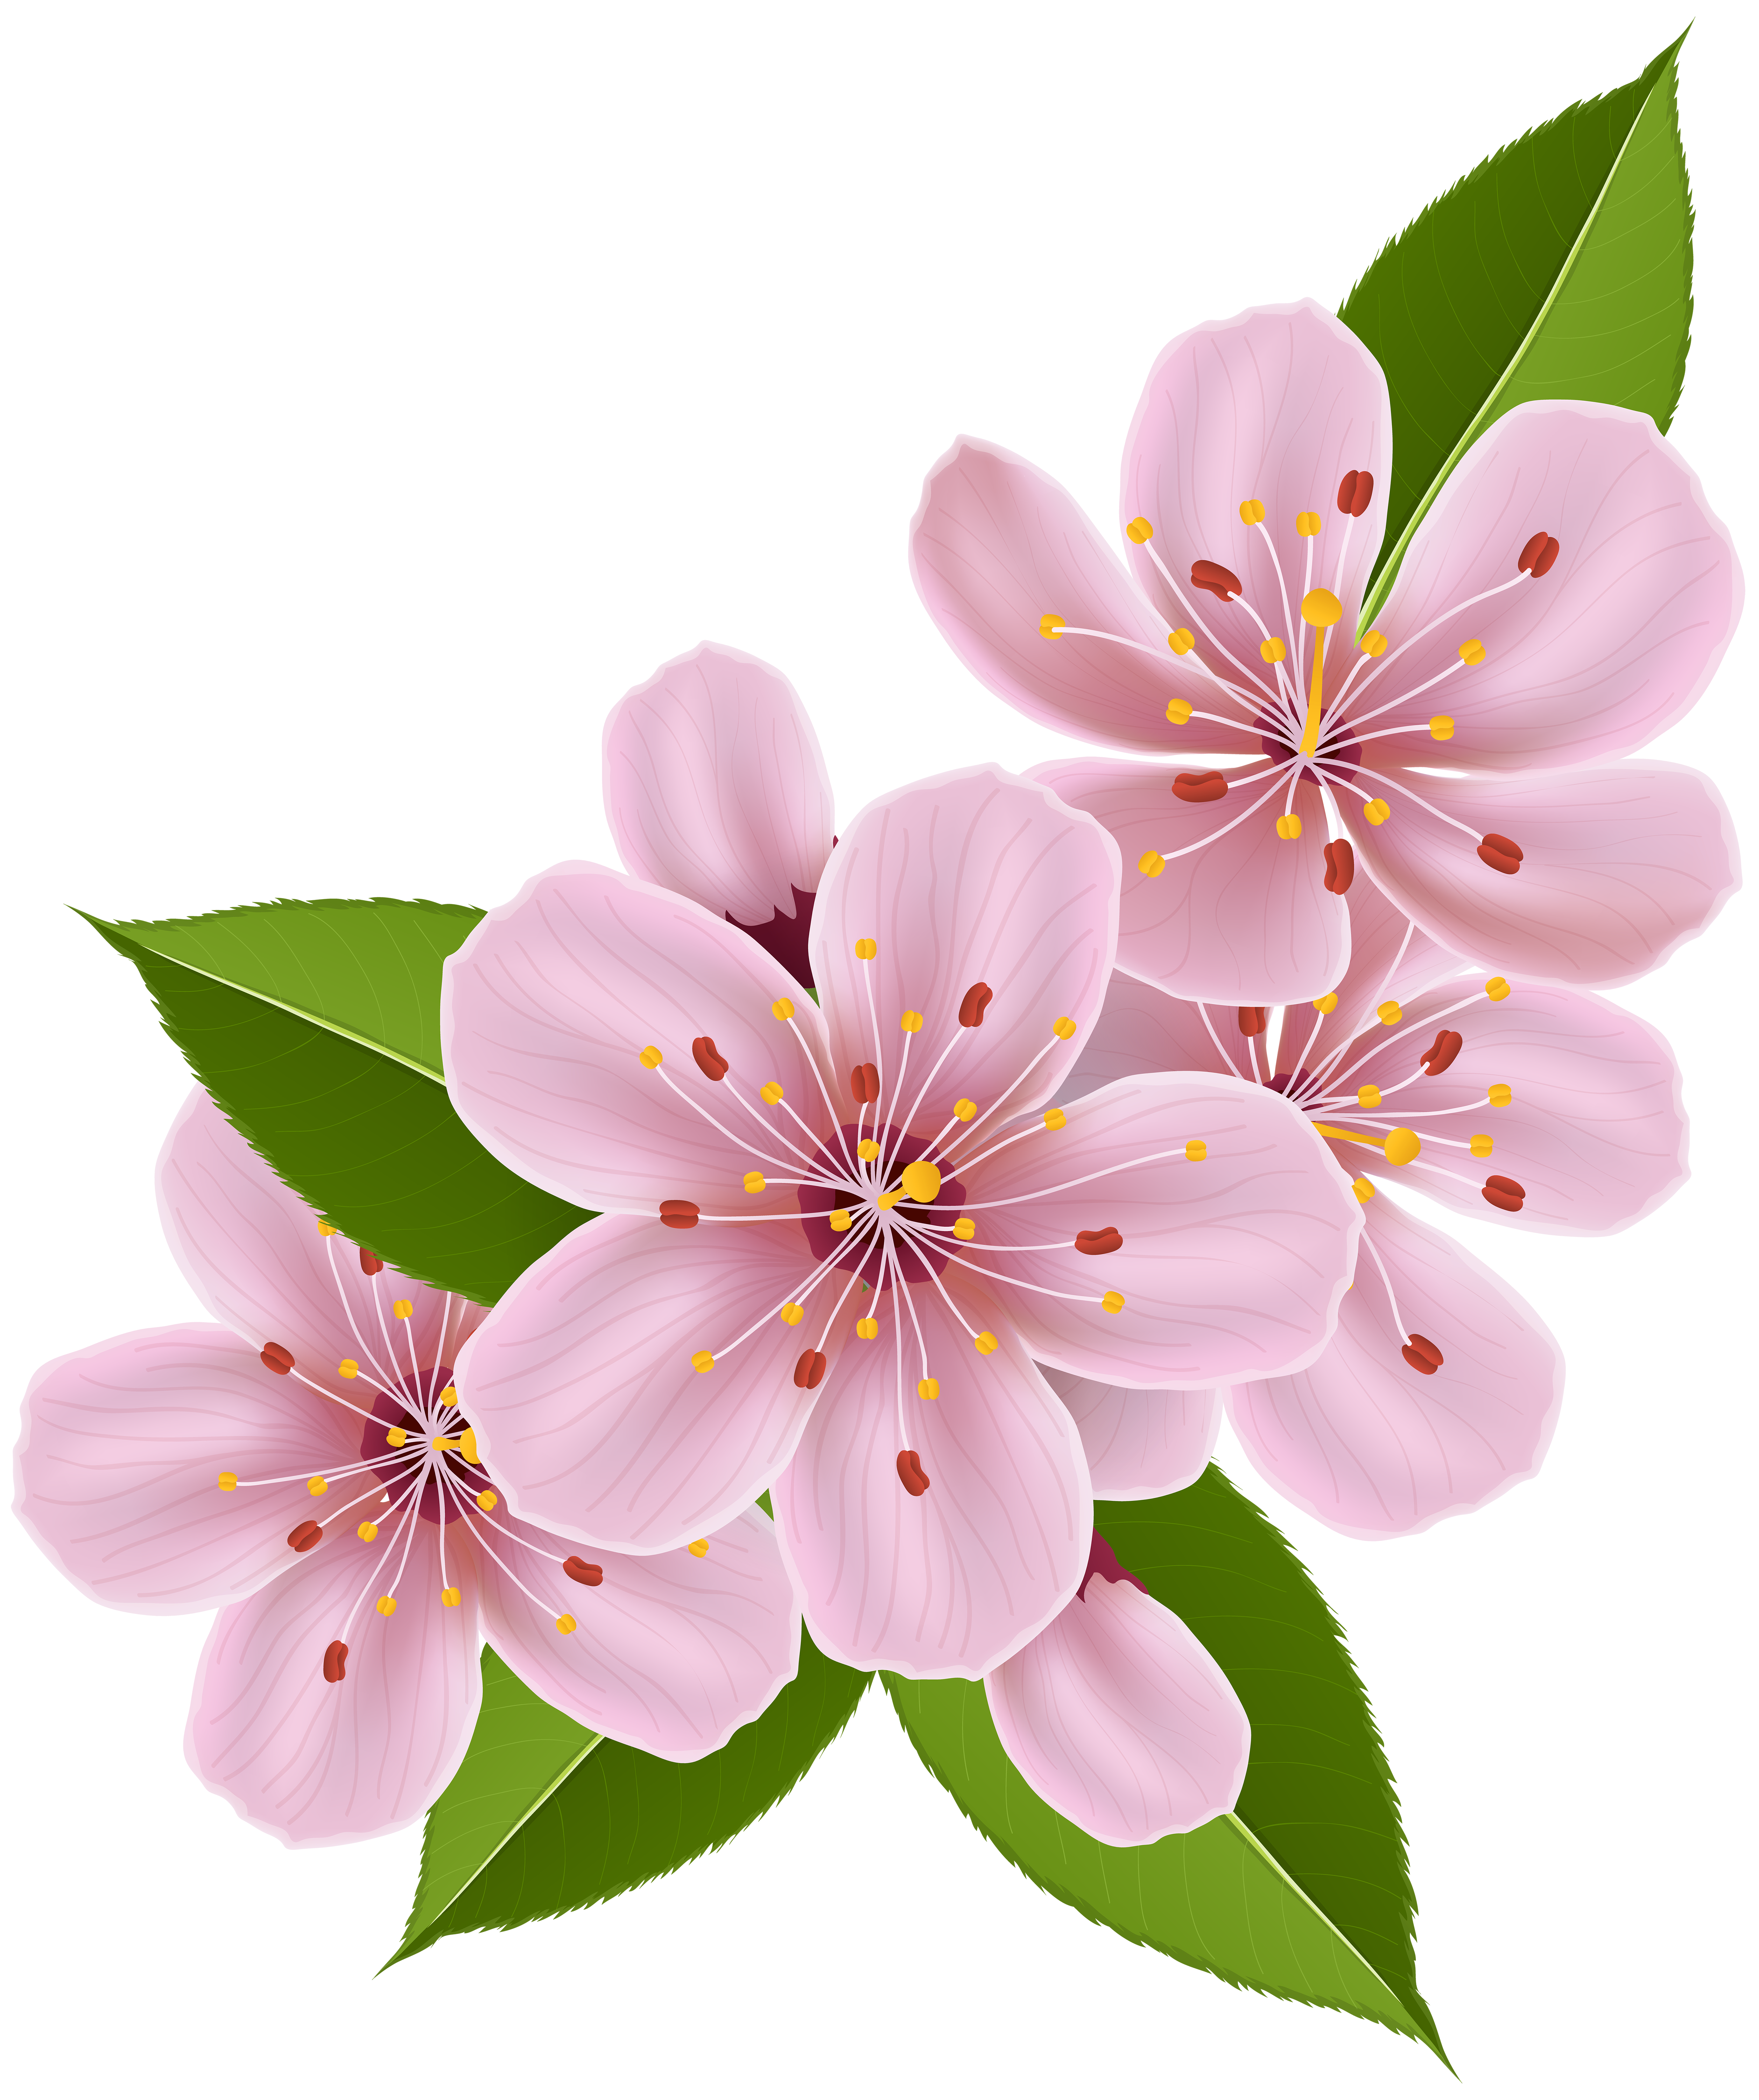 Cherry branch png. Spring blossom flowers clip